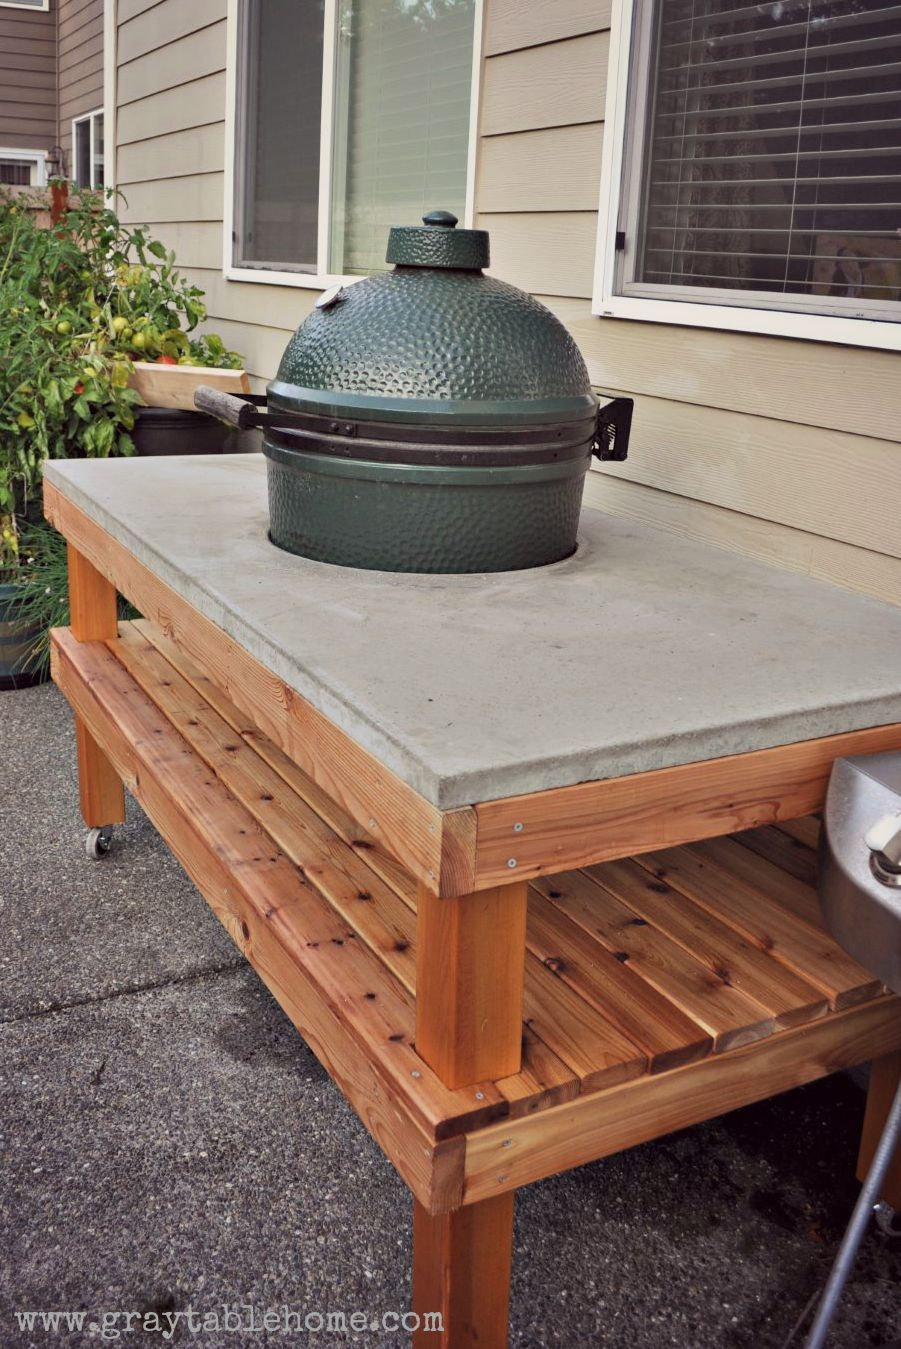 34+ Outdoor kitchen plans for big green egg info